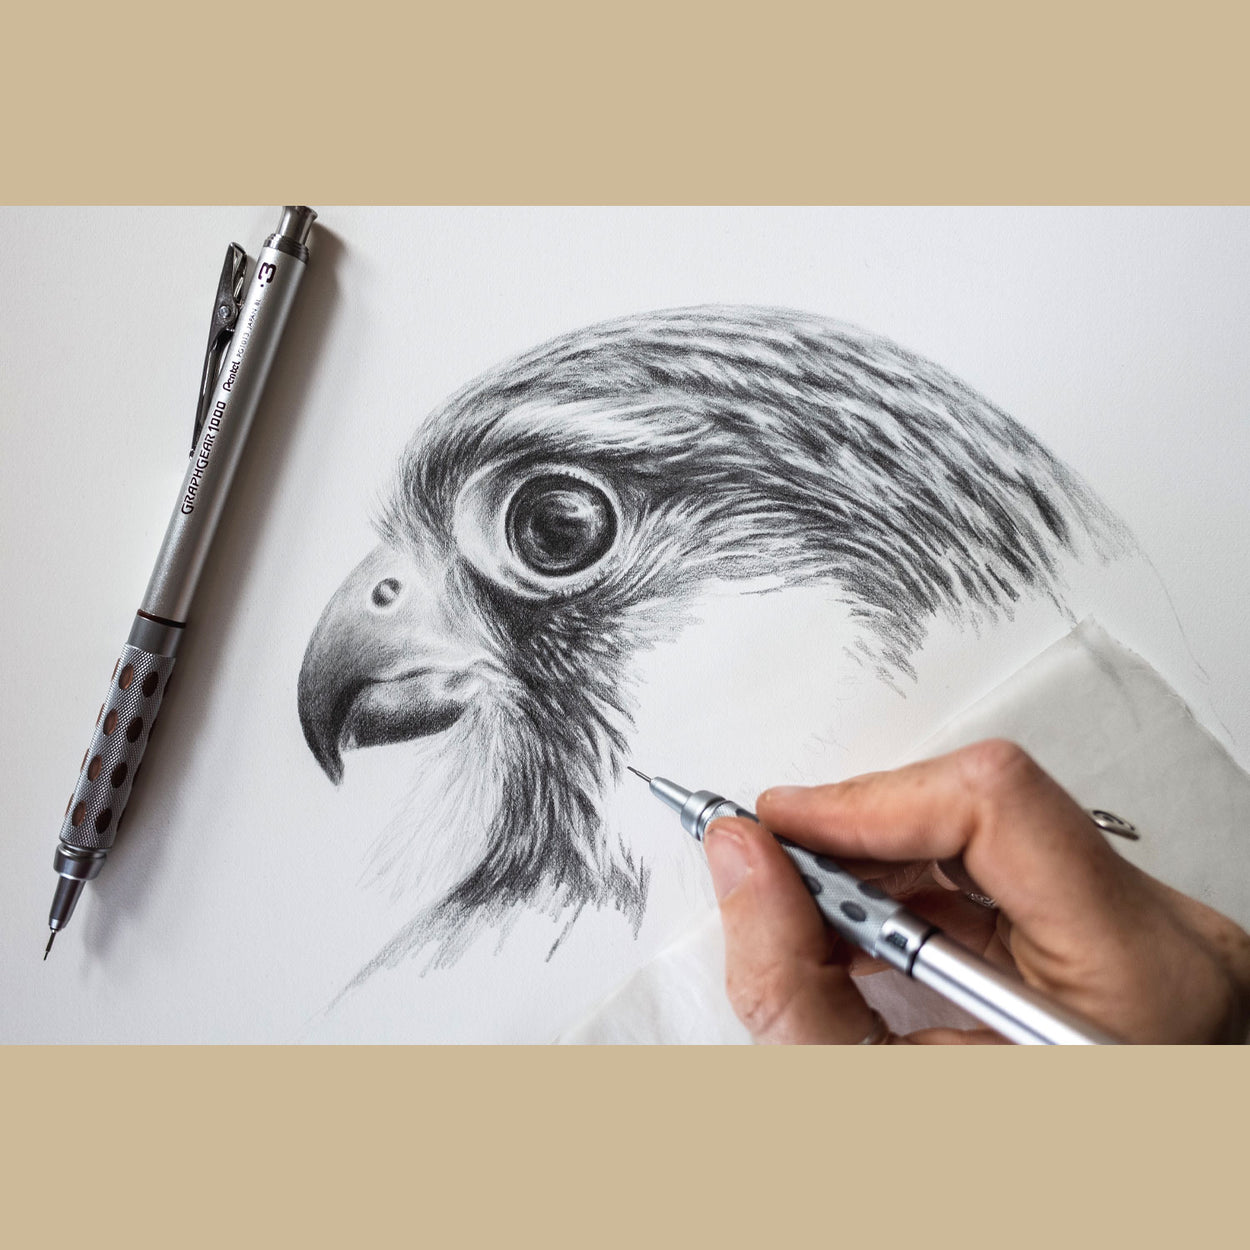 Kestrel Bird of Prey Drawing in Progress - The Thriving Wild - Jill Dimond